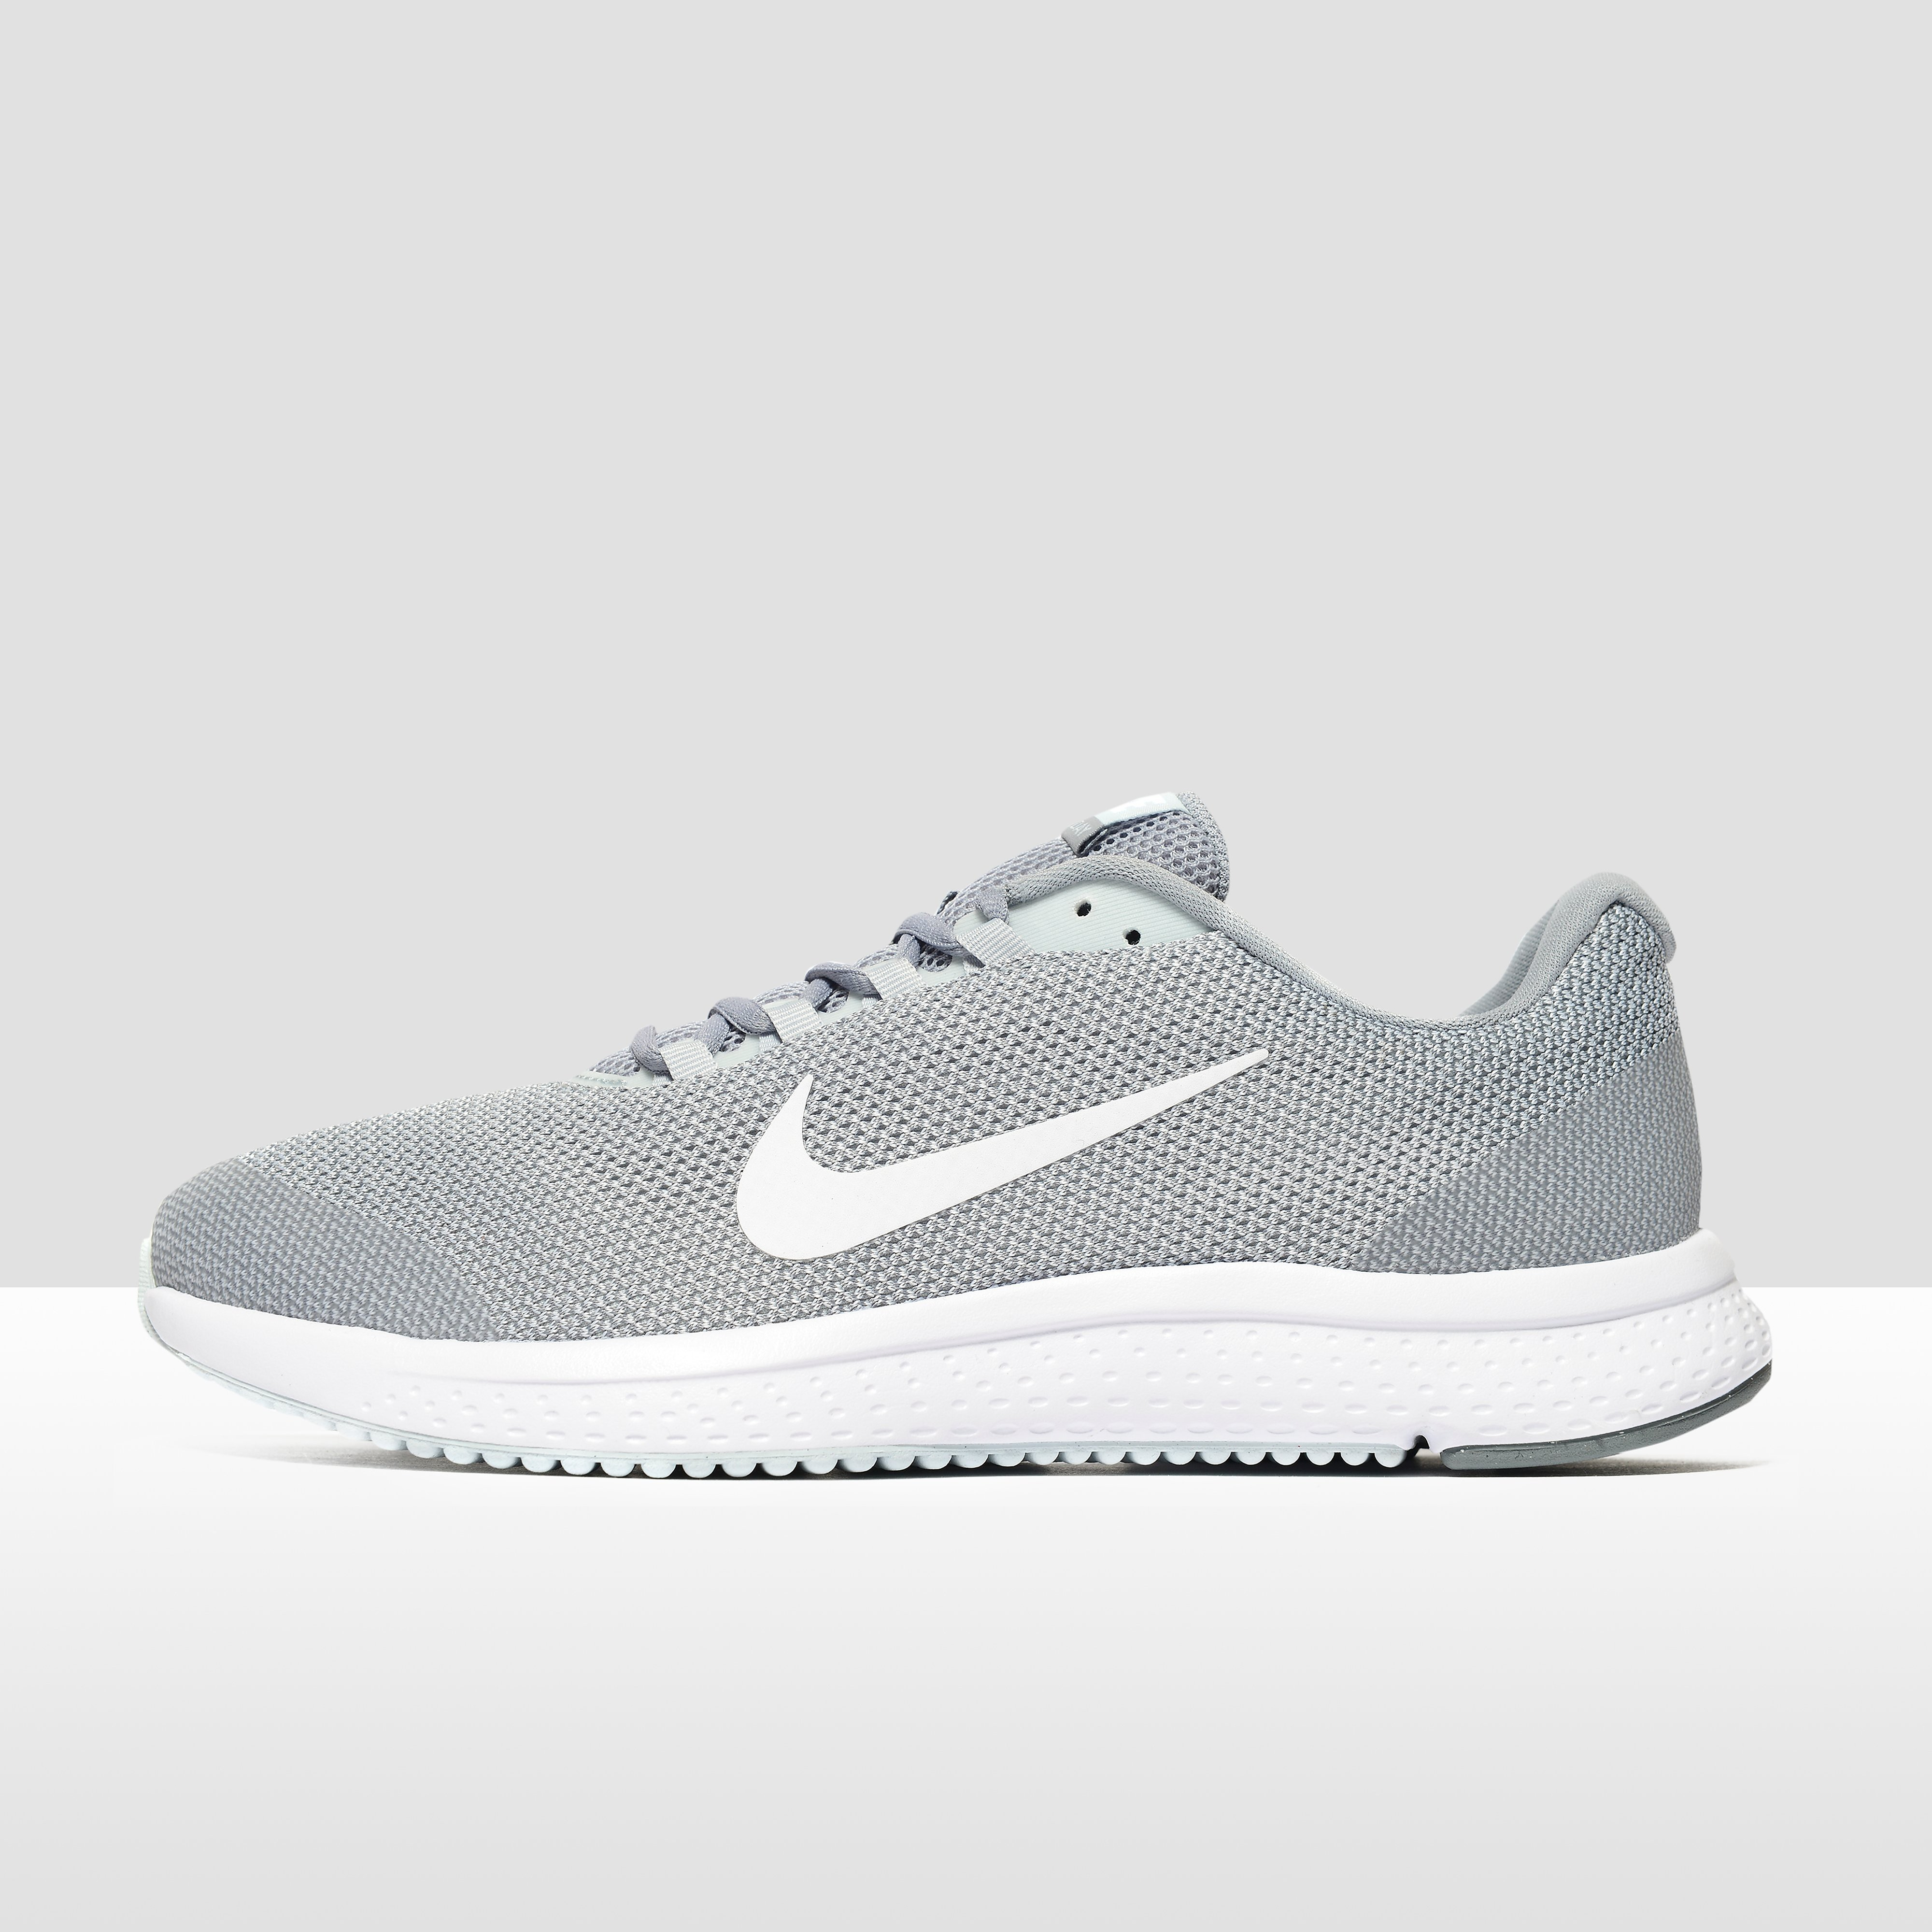 Nike Run All Day Men's Running Shoe